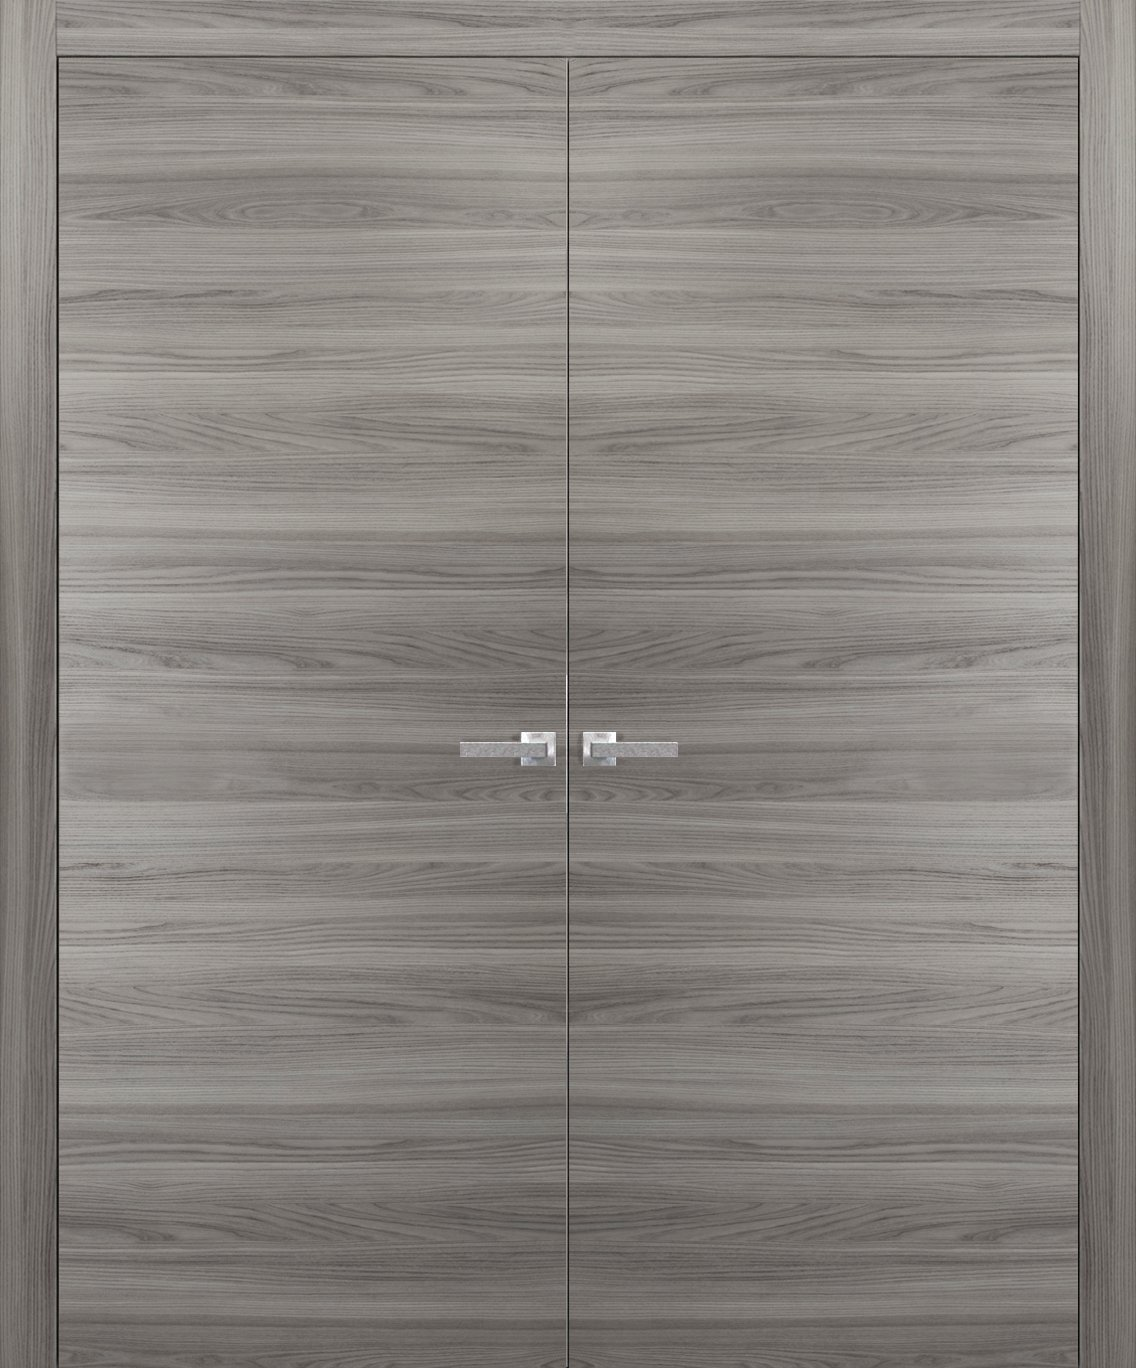 French Double Doors 64 x 80 inches with Hardware | Planum 0010 Ginger Ash | Trims Lever Hinges | Solid Pre-hung Door Flush Modern Design